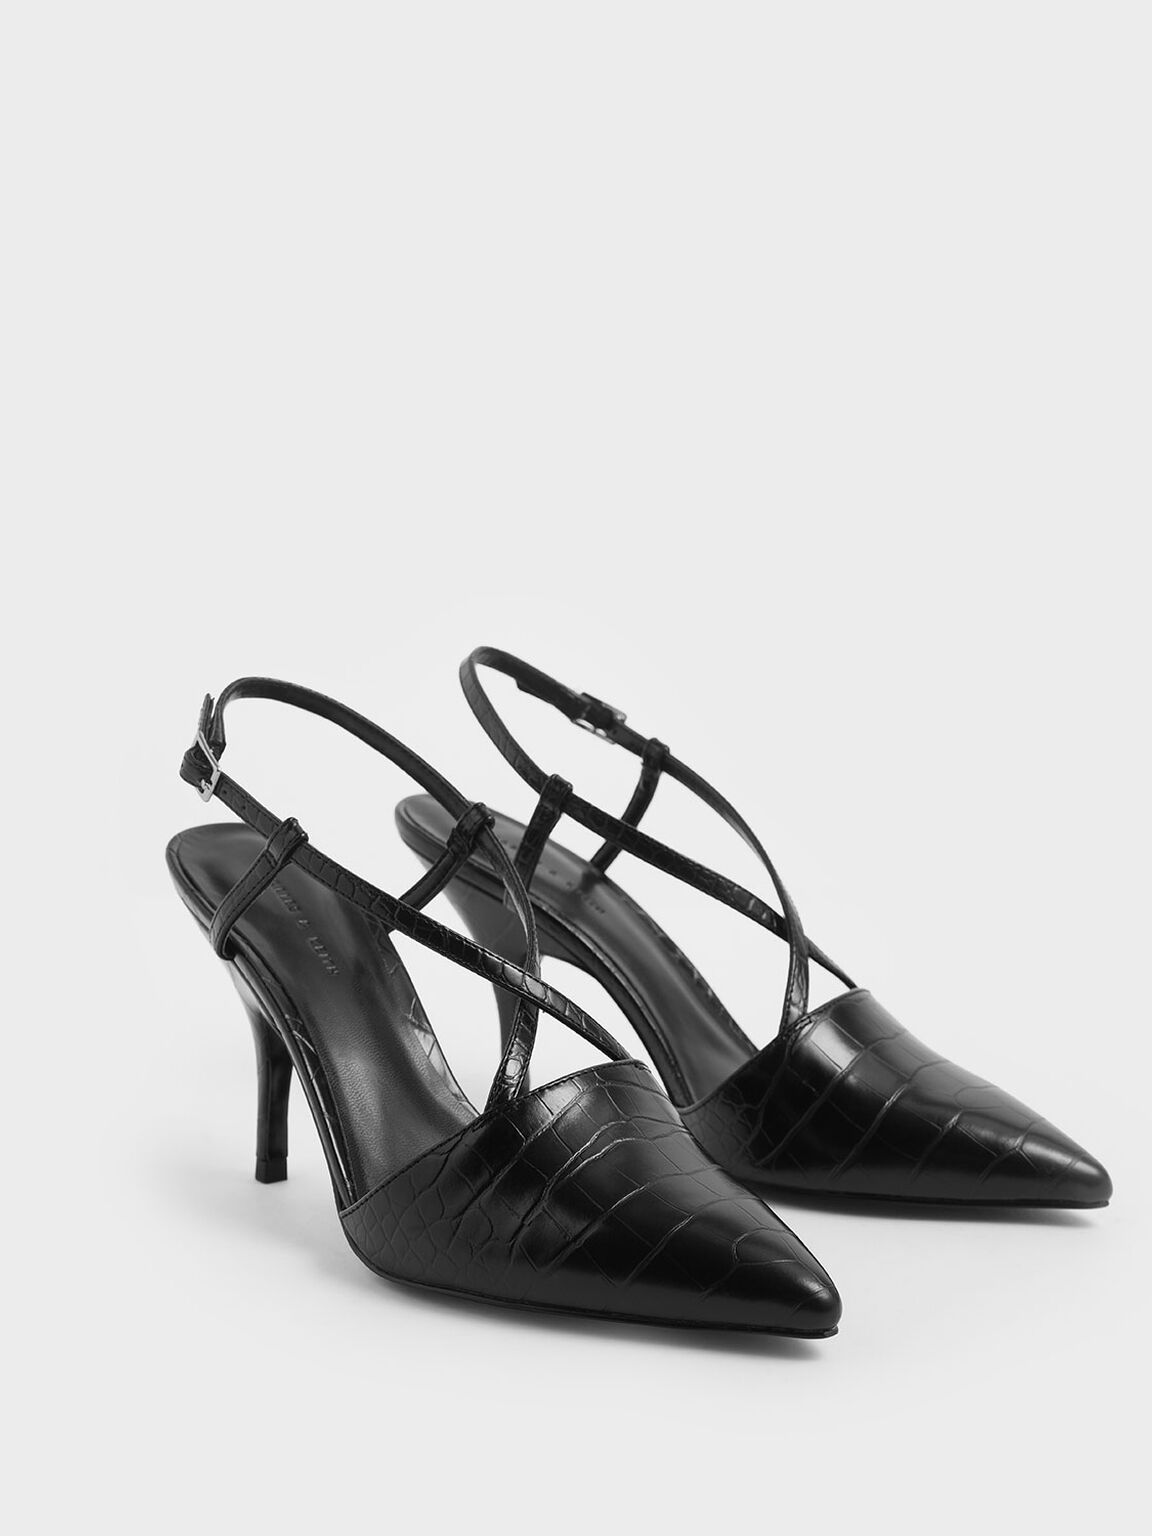 Croc-Effect Criss Cross Strappy Pointed Toe Heels, Black, hi-res